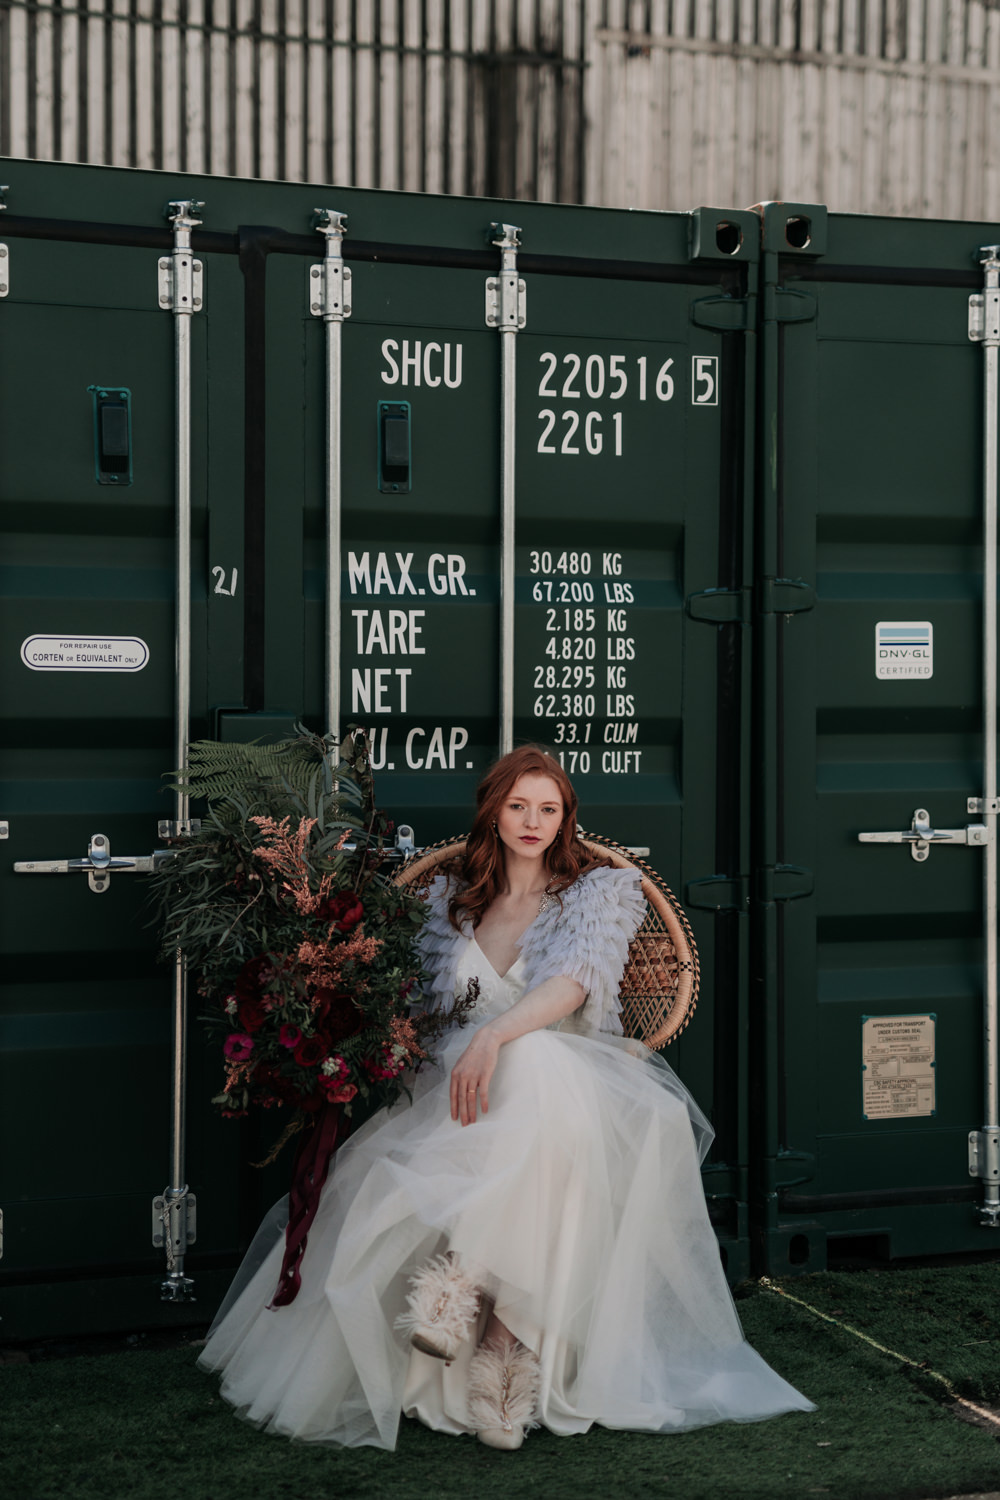 Bride Bridal Shoes Heels Feathers Industrial Luxe Wedding Ideas Balloon Installation Ayelle Photography